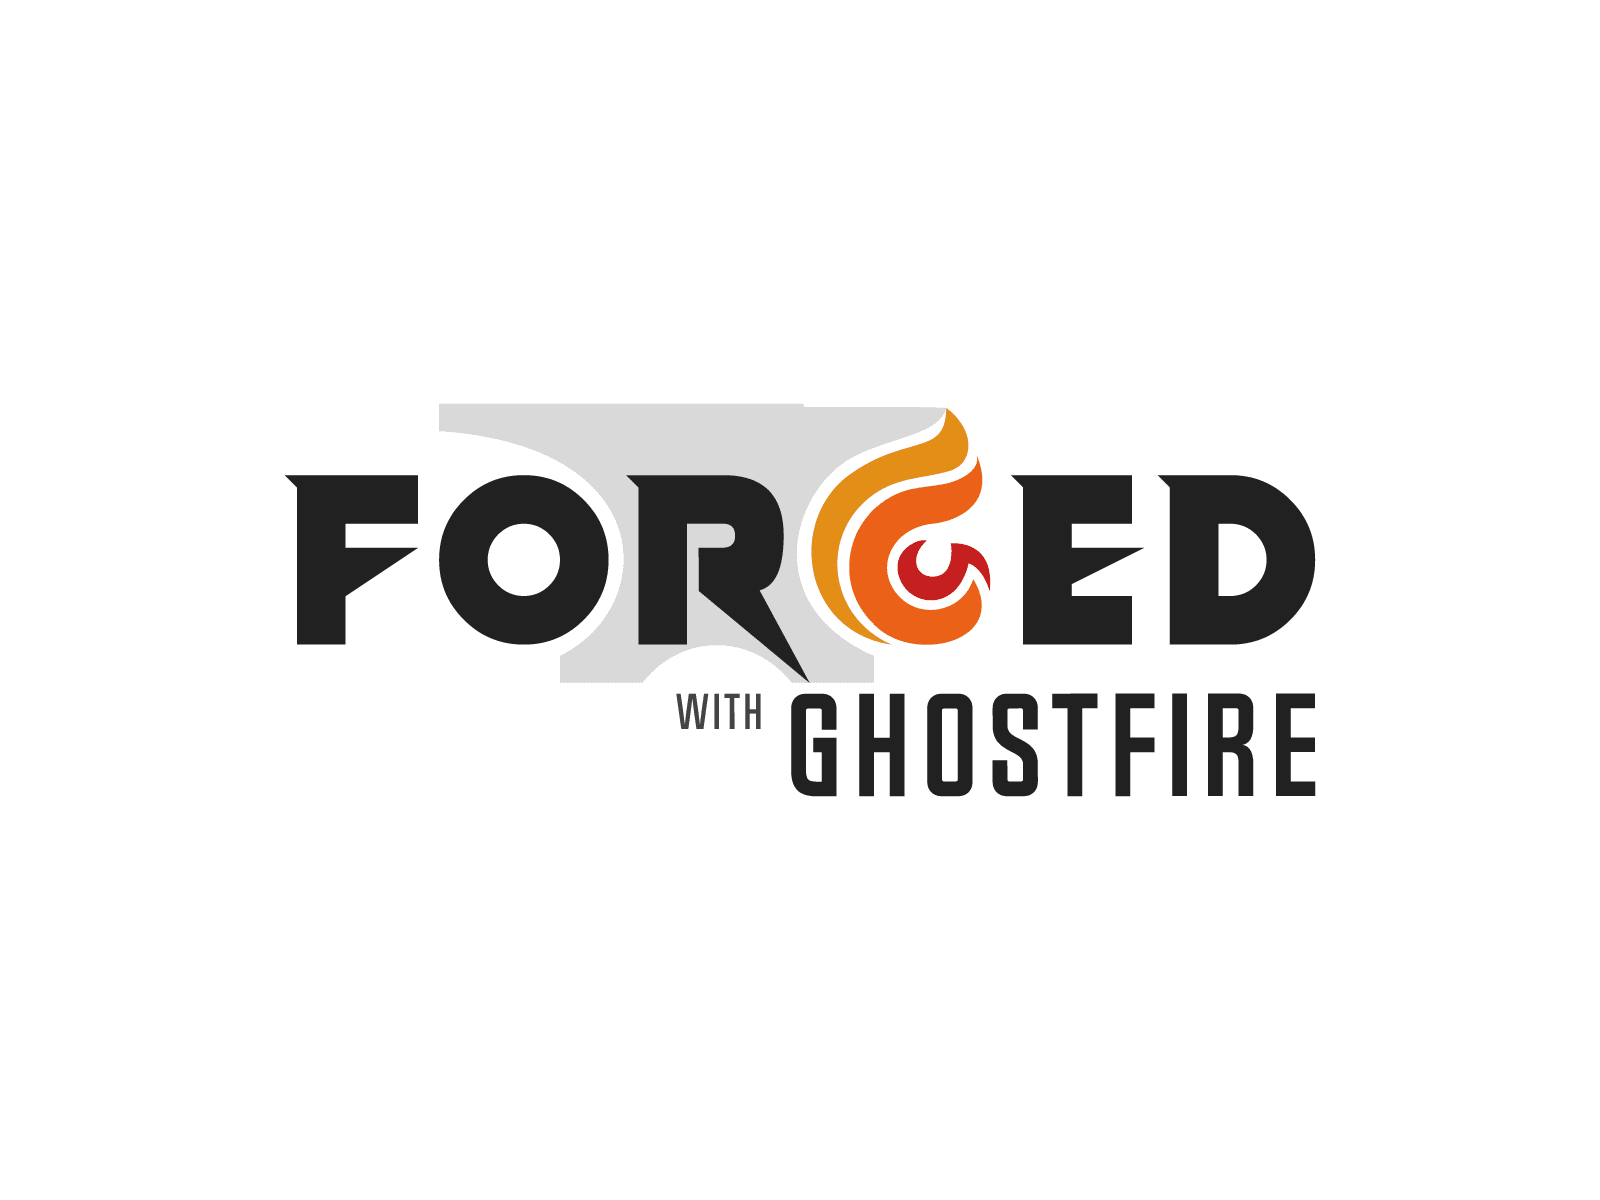 Forged with Ghostfire Logo